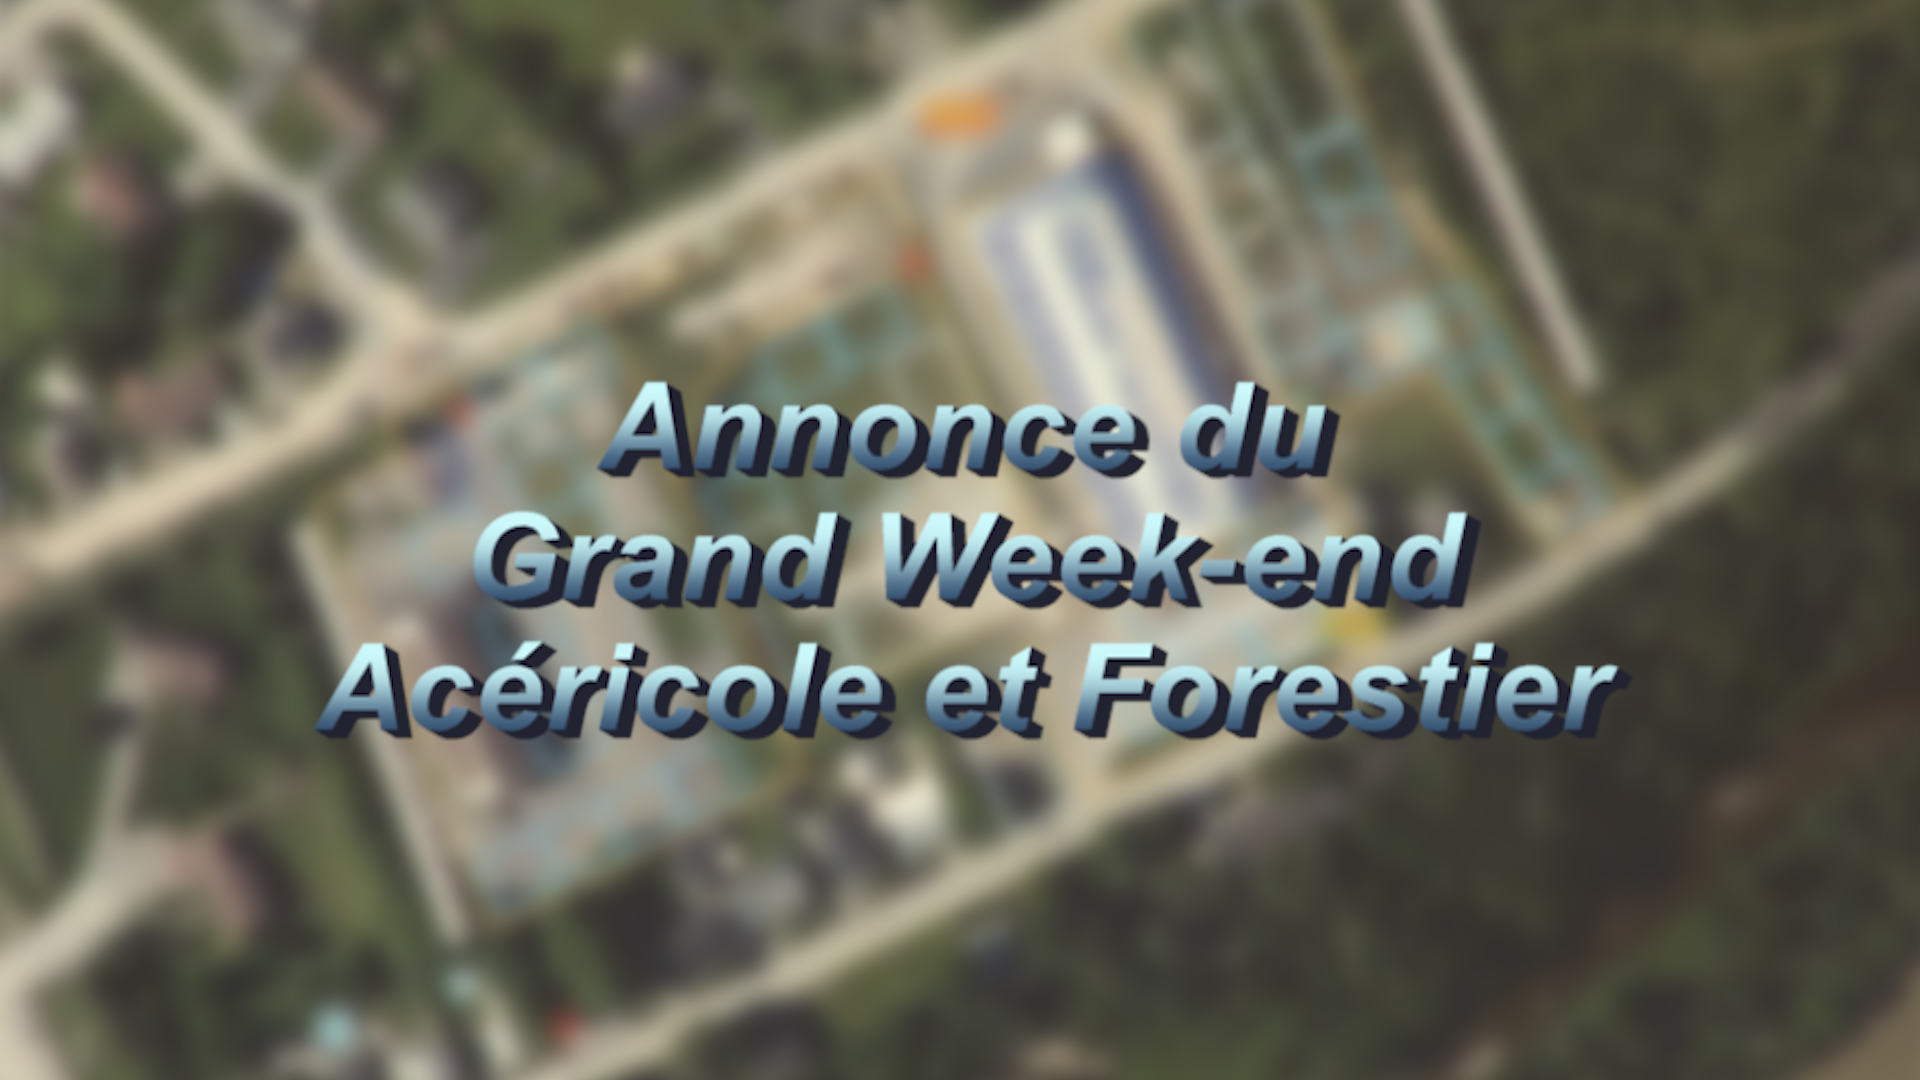 Annonce du grand week-en forestier